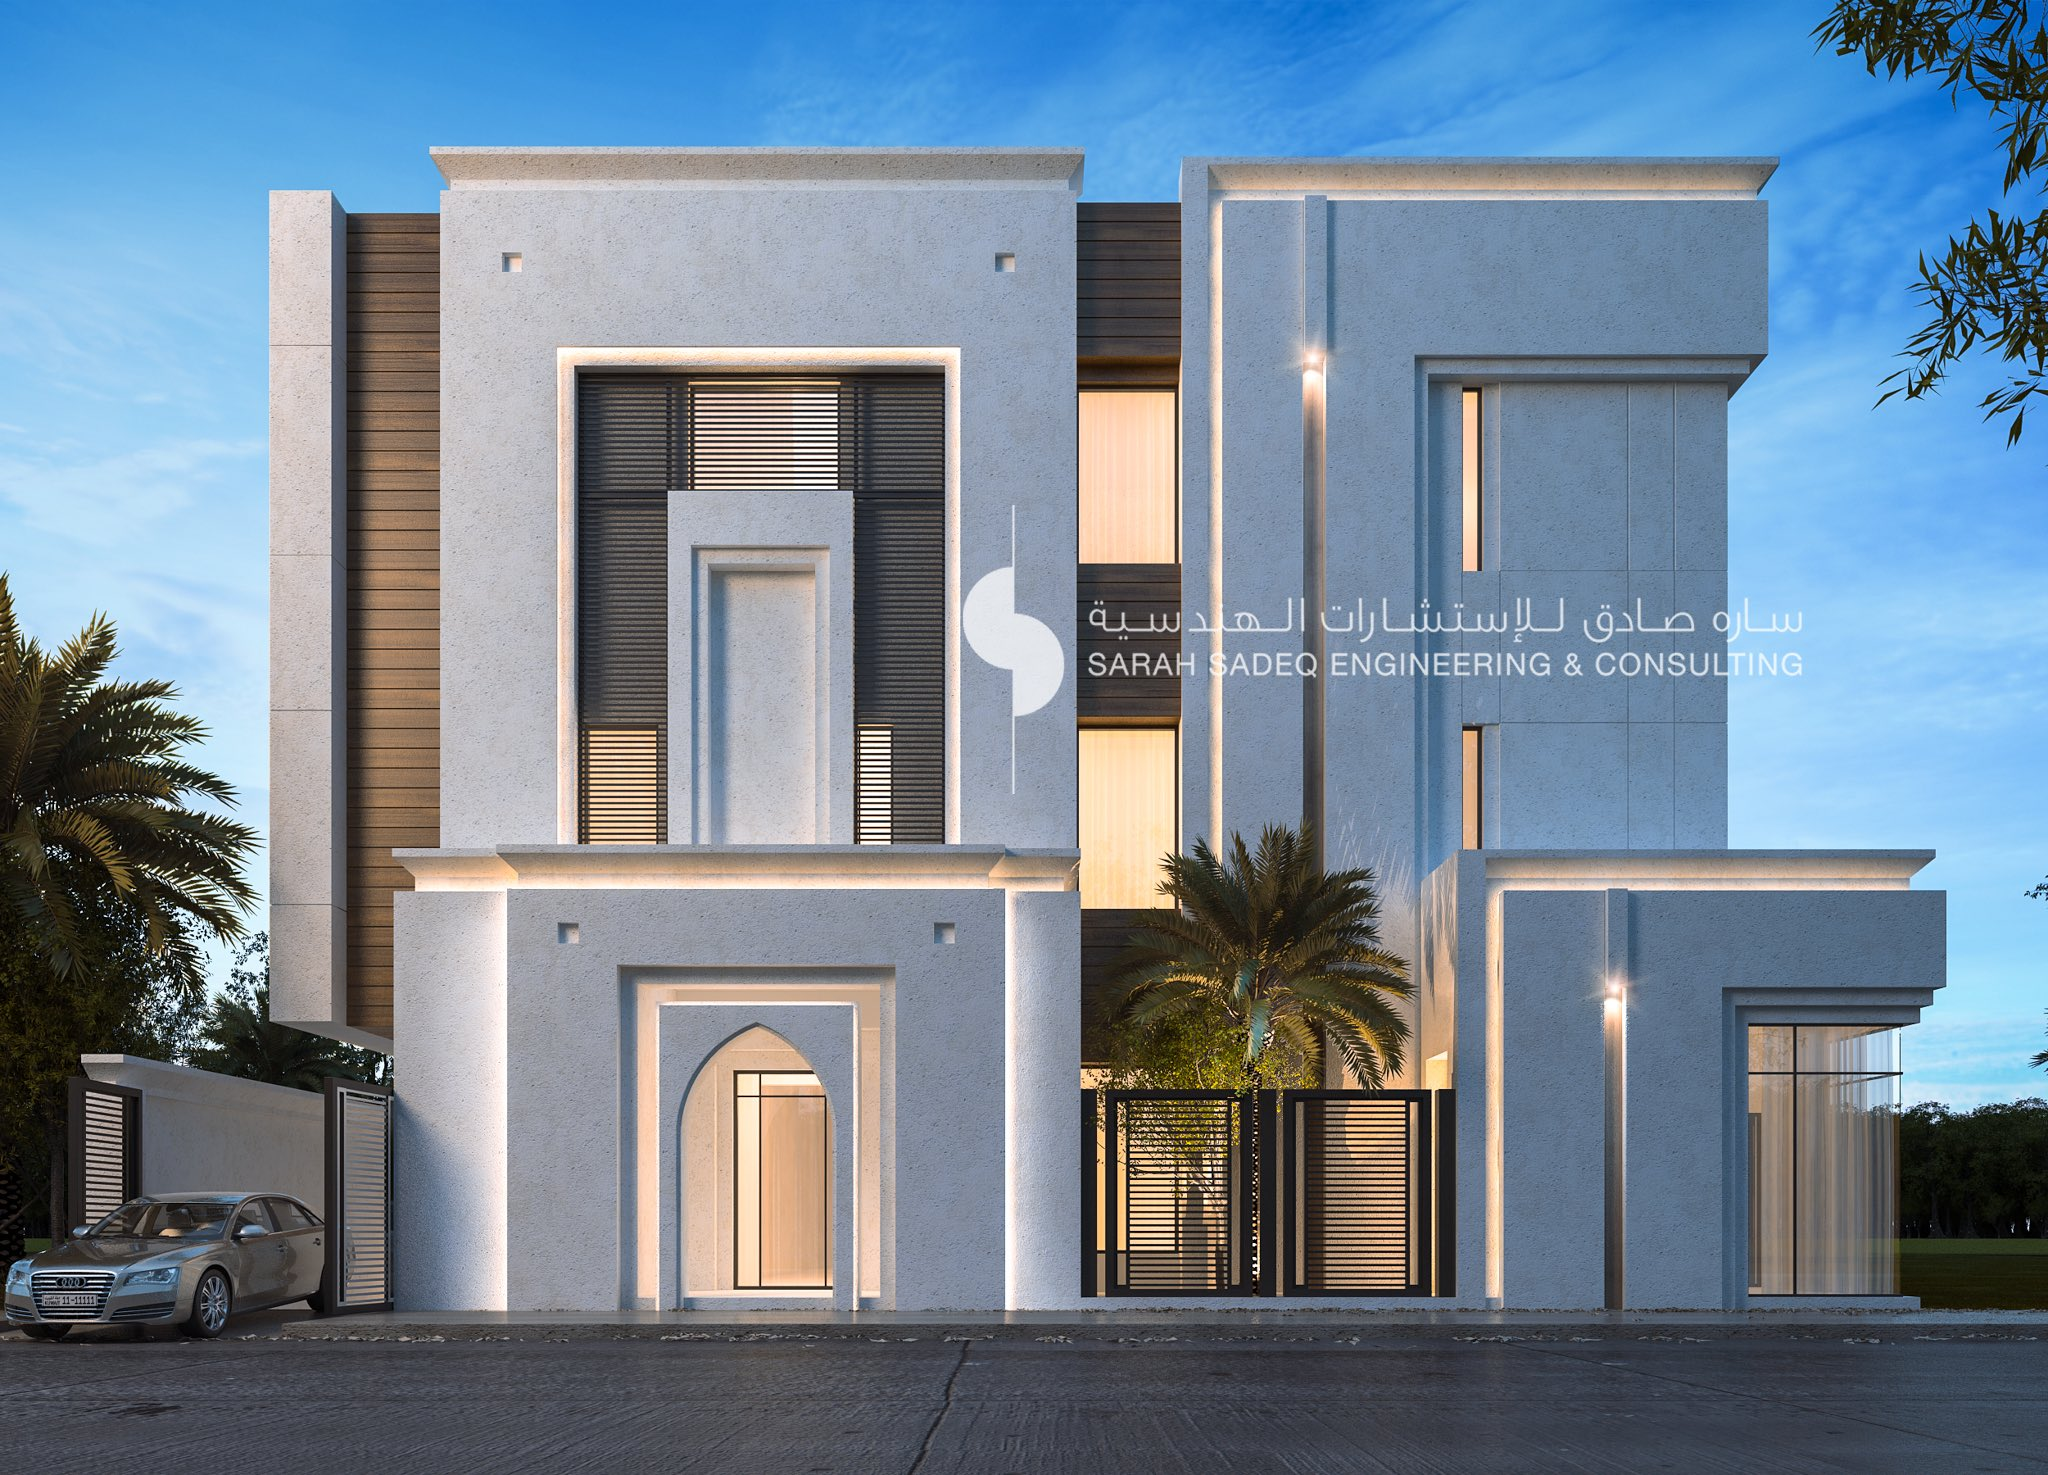 Arch sarah sadeq on twitter for Exterior home design consultant